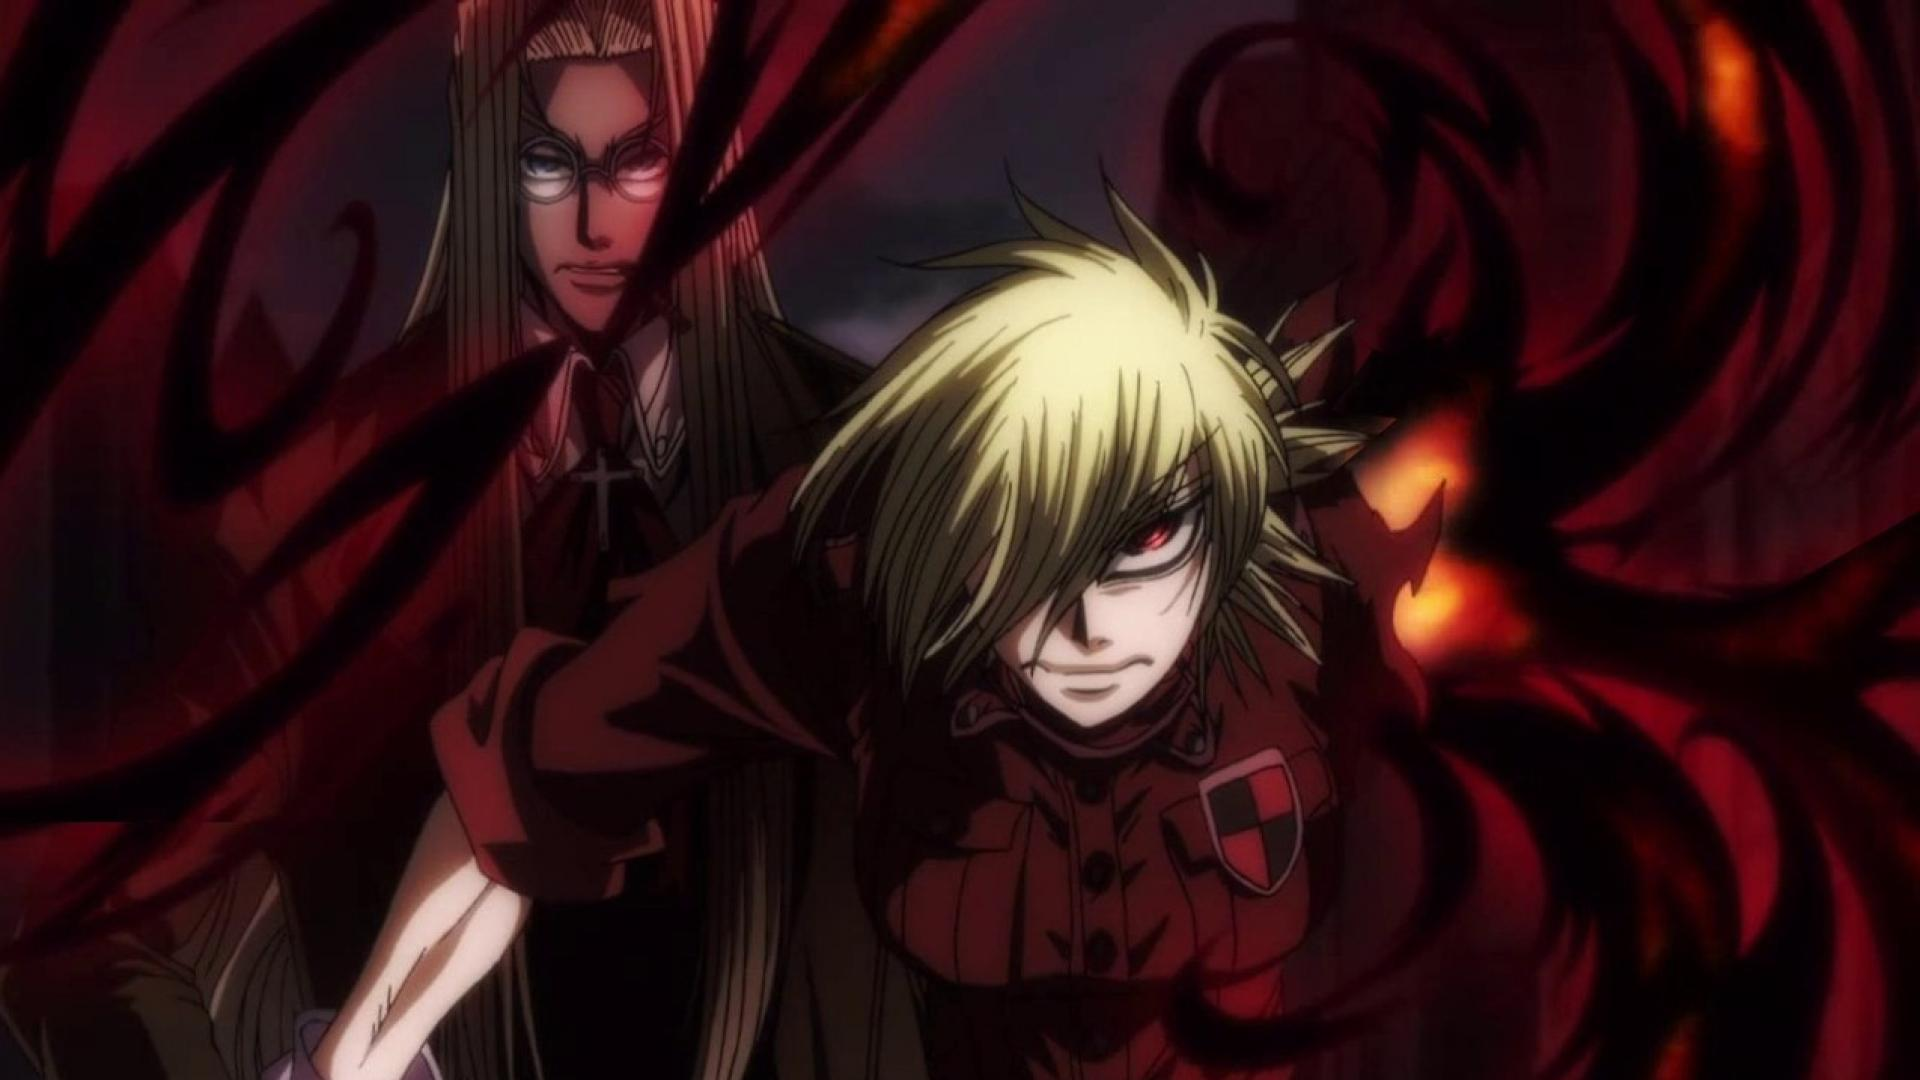 Seras victoria hellsing ultimate wallpaper 74127 1920x1080